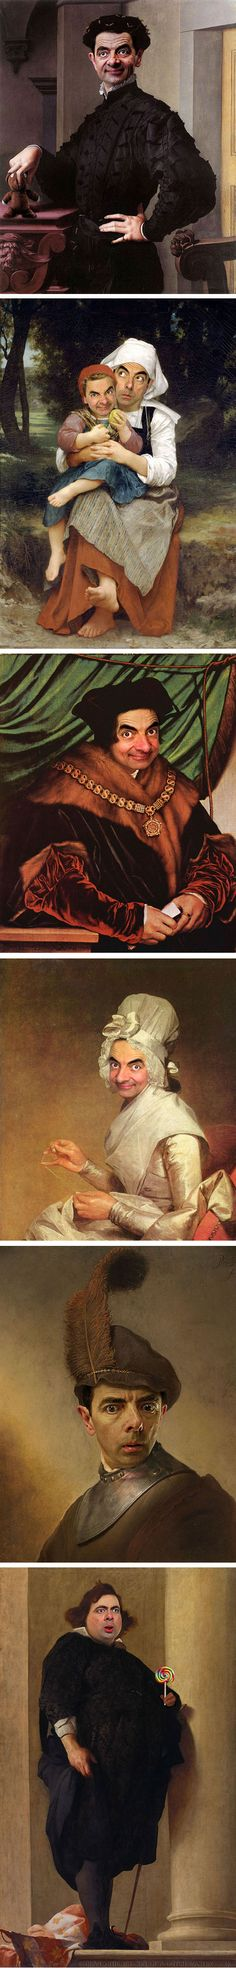 Mr Bean in famous paintings